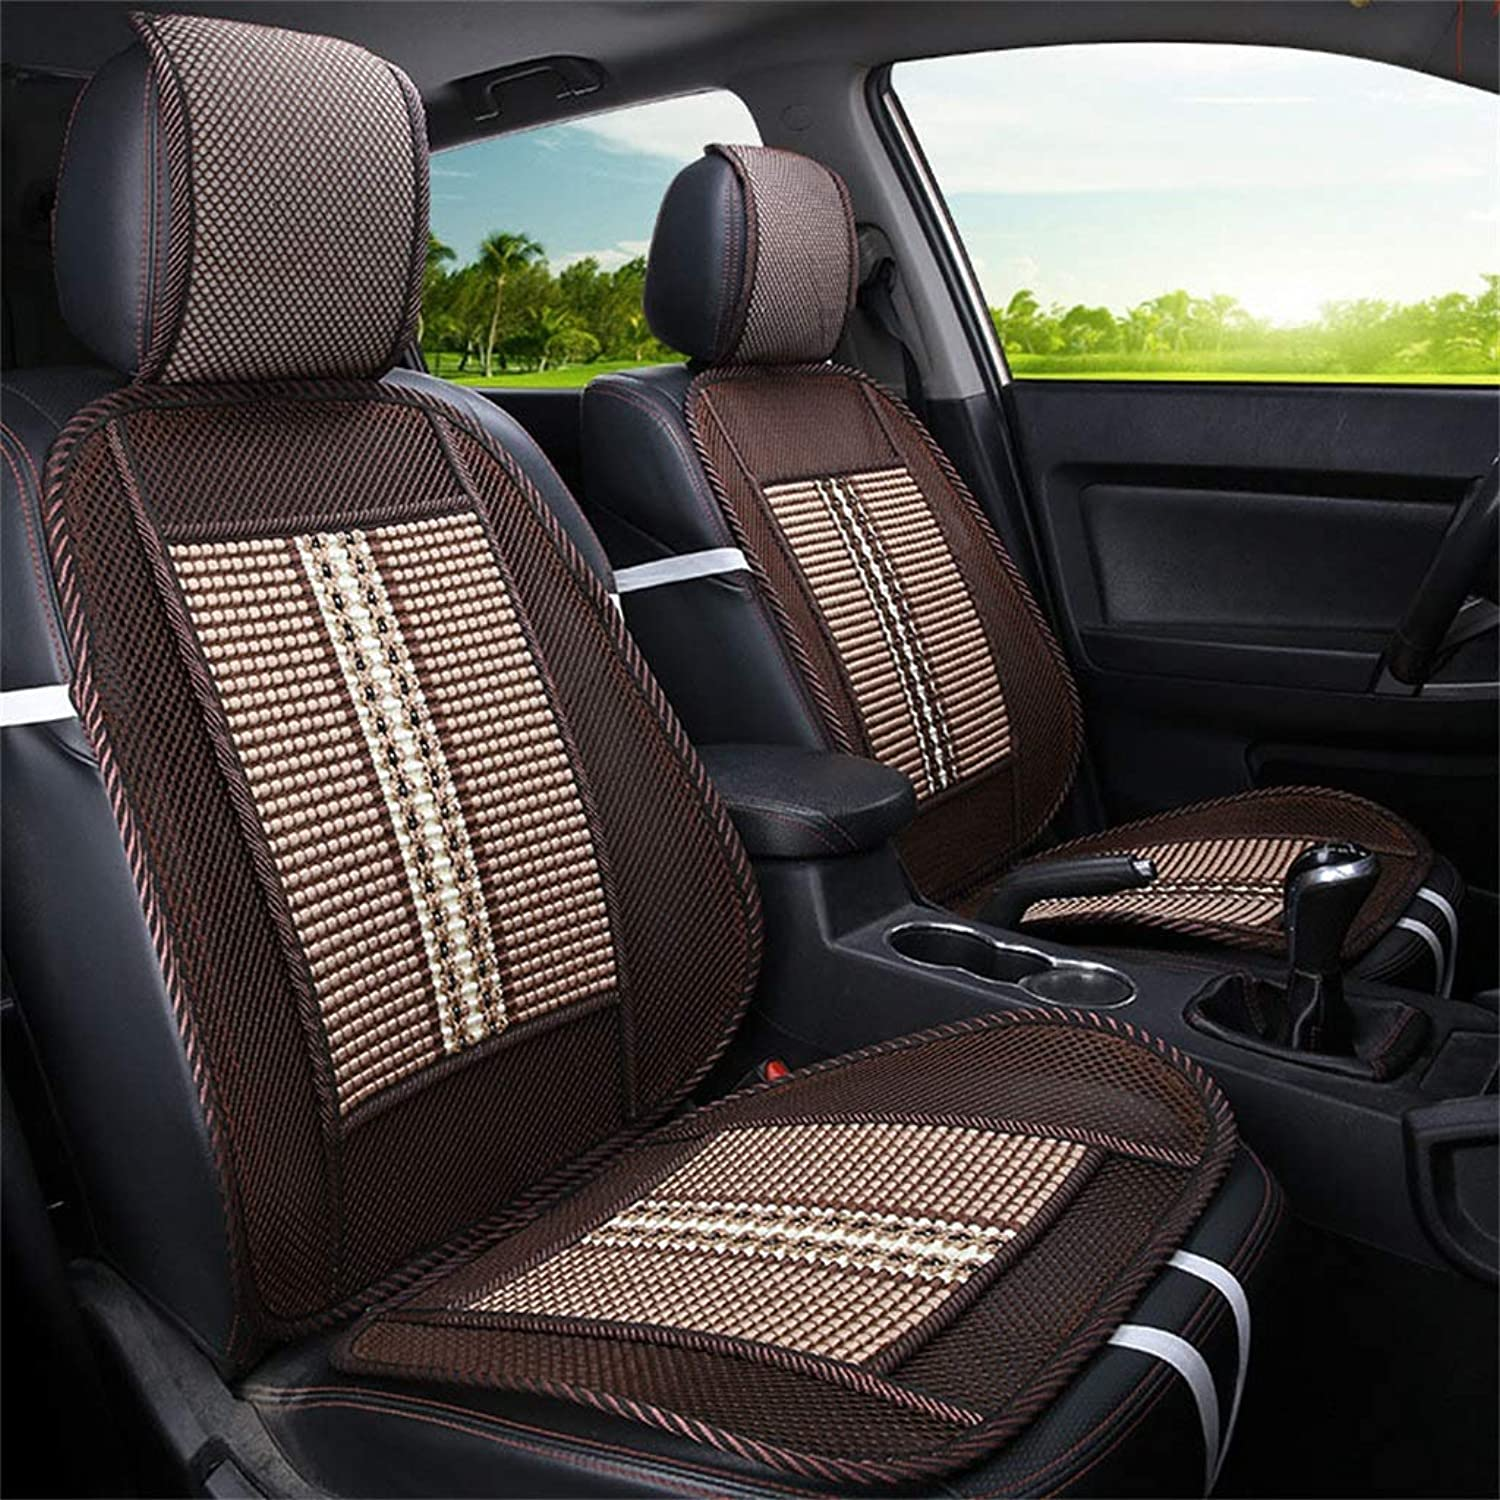 Car Seat Cushion Breathable Wood Bamboo Summer Front Row Seat Single Seat for Cars, Trucks